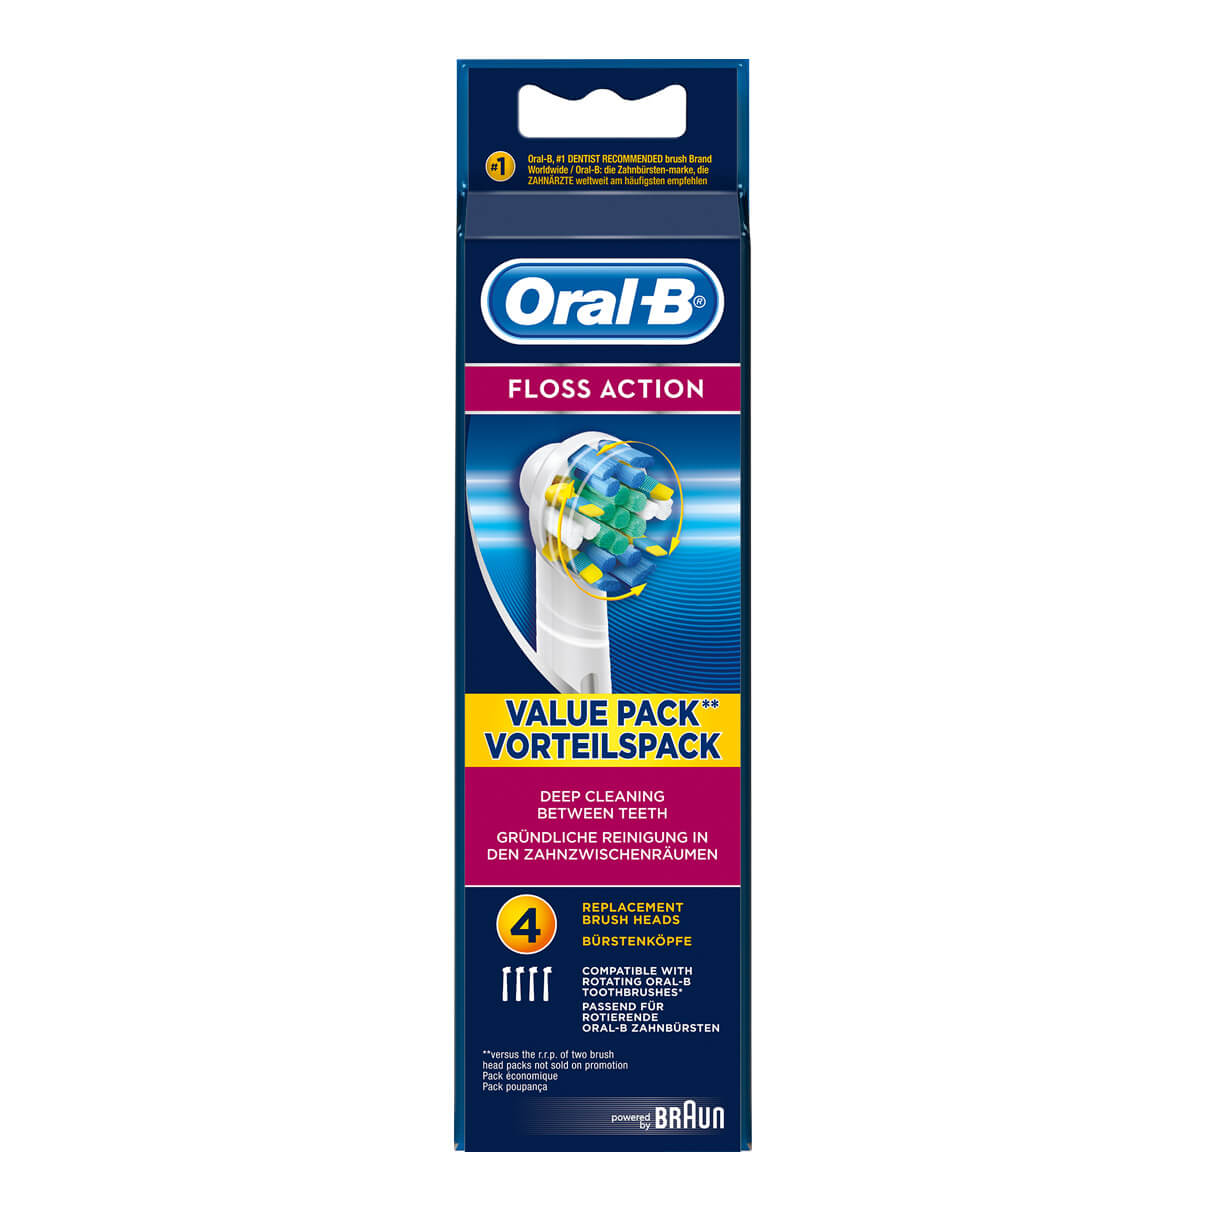 Oral-B FlossAction Replacement Brush Heads